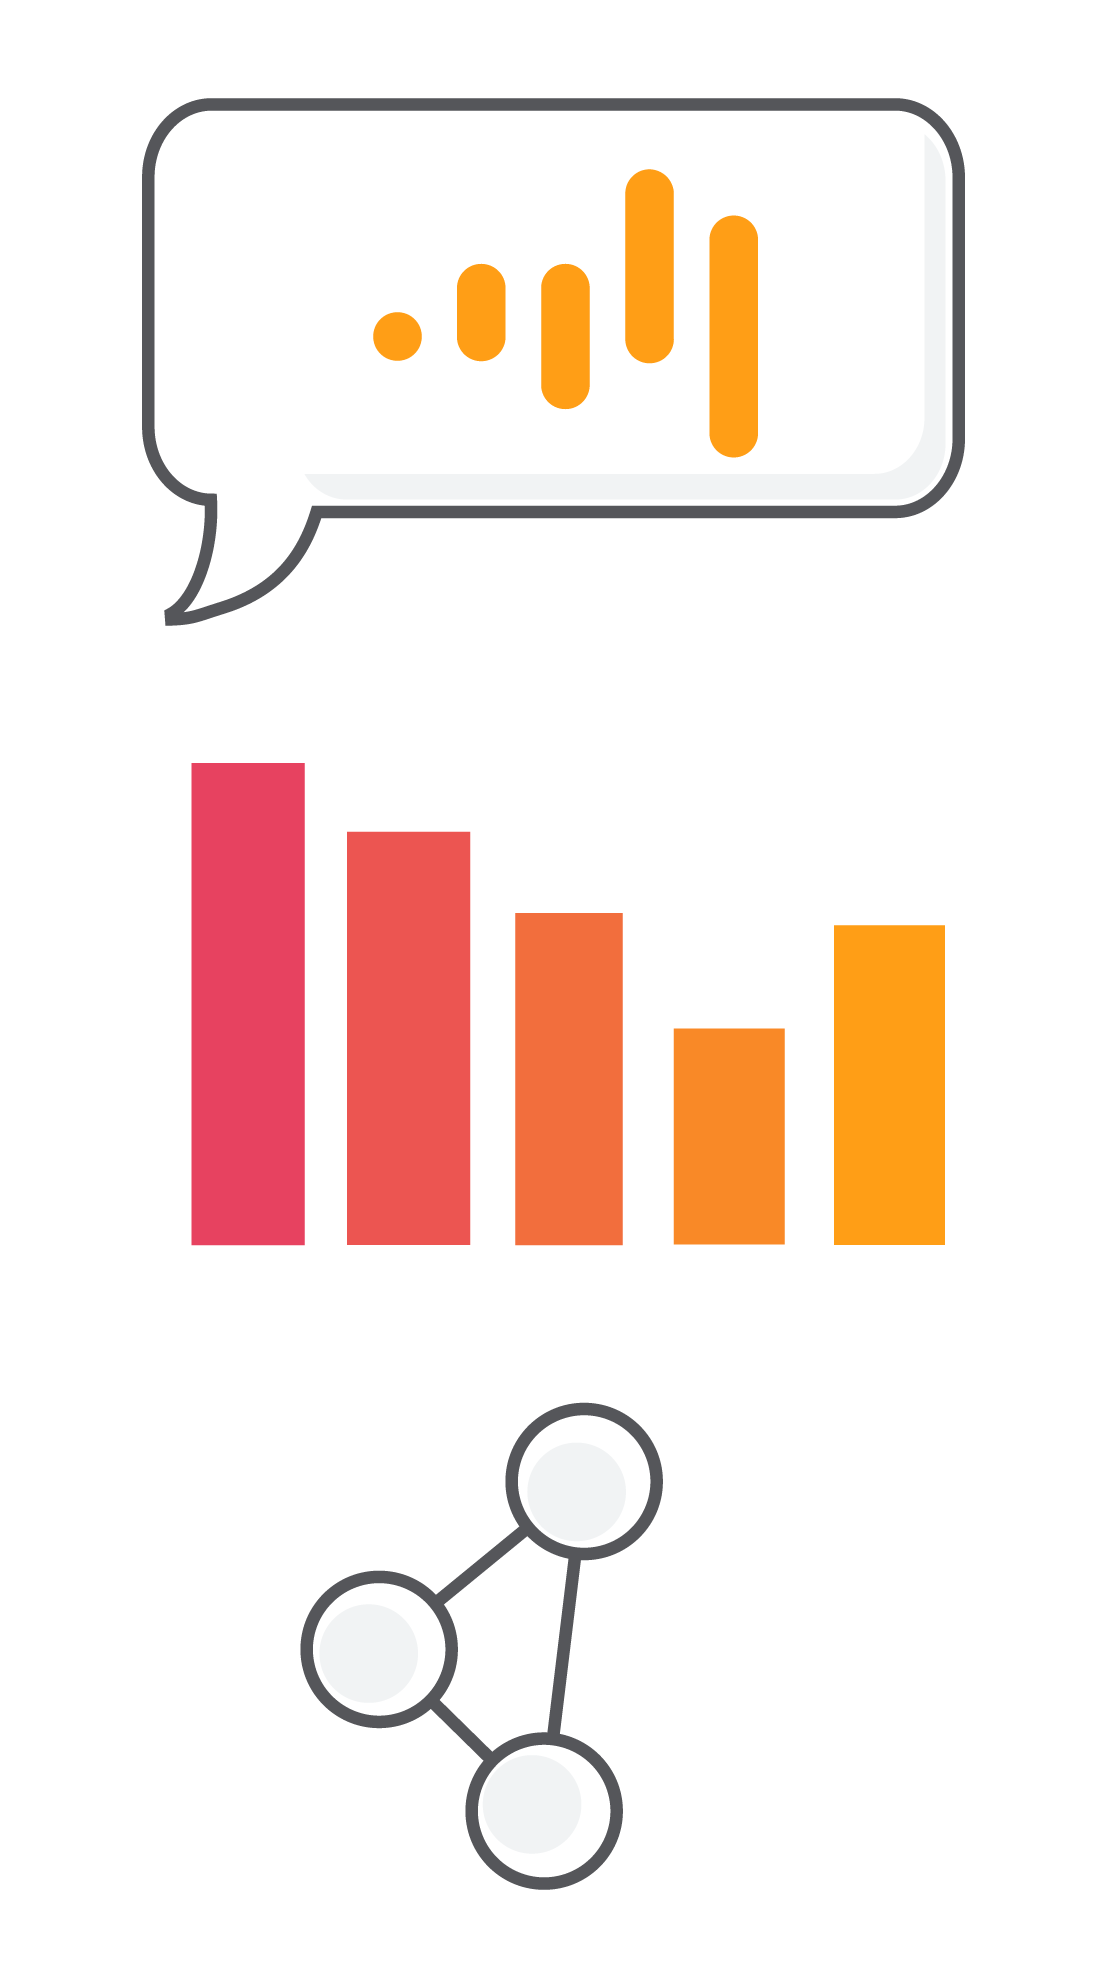 A speech bubble with the DarwinSpeech logo, a pink and orange bar chart, and a node graph